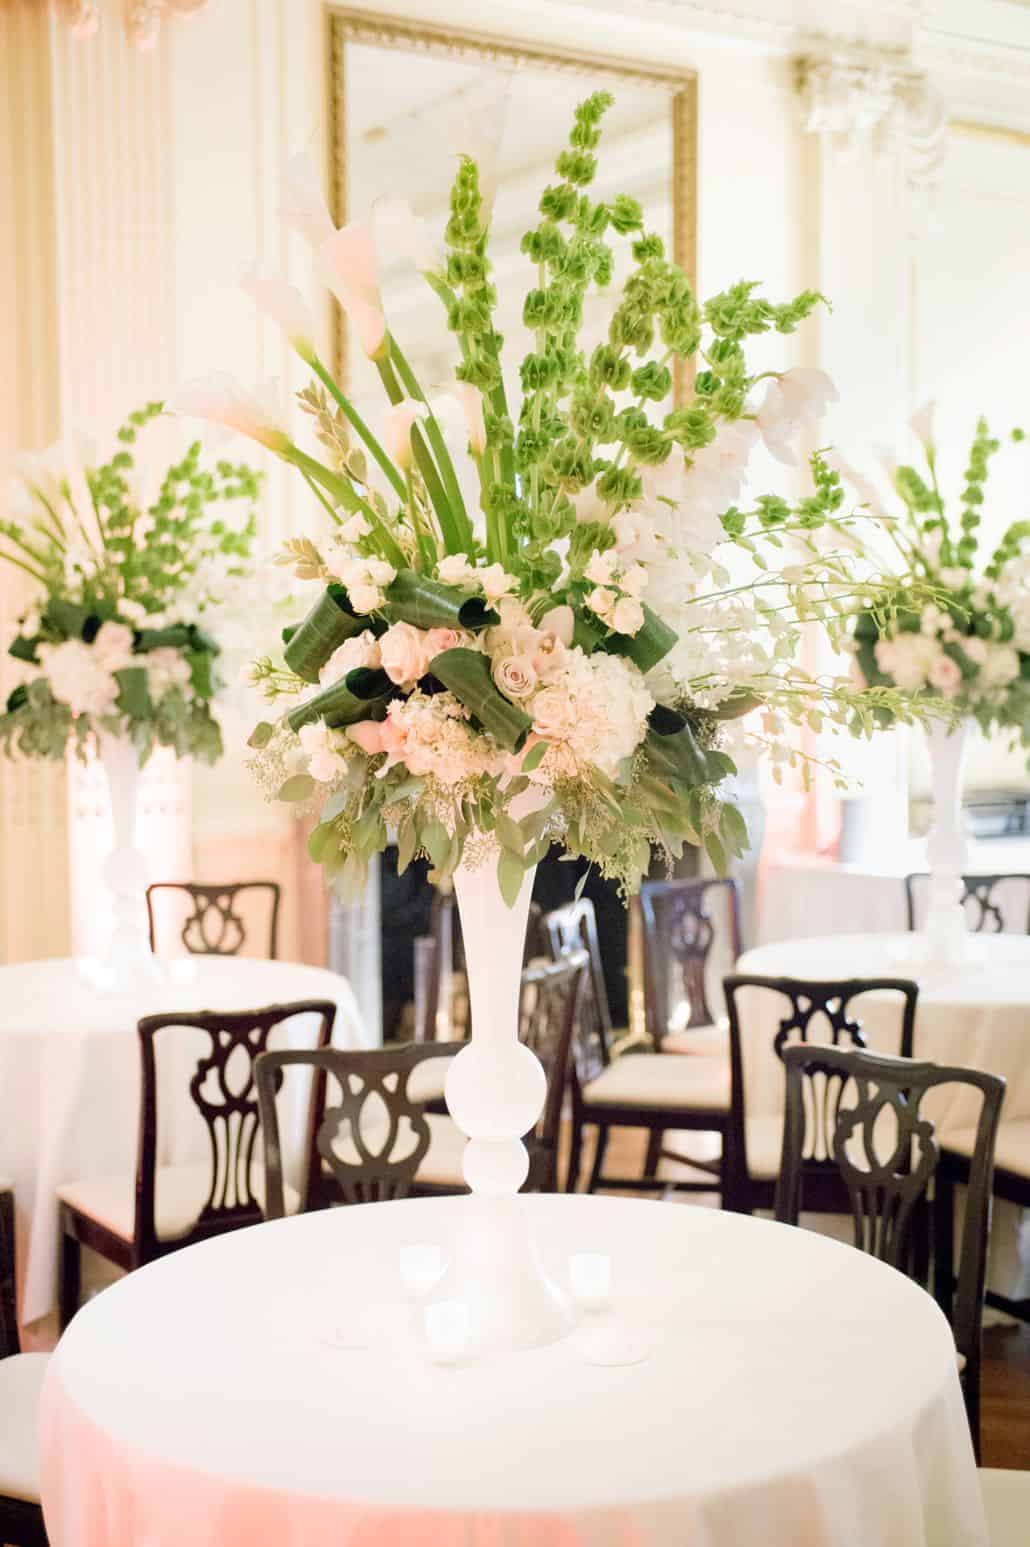 Tall Peach And Green Wedding Table Centerpieces With Roses, Bells Of  Ireland, Calla Lilies